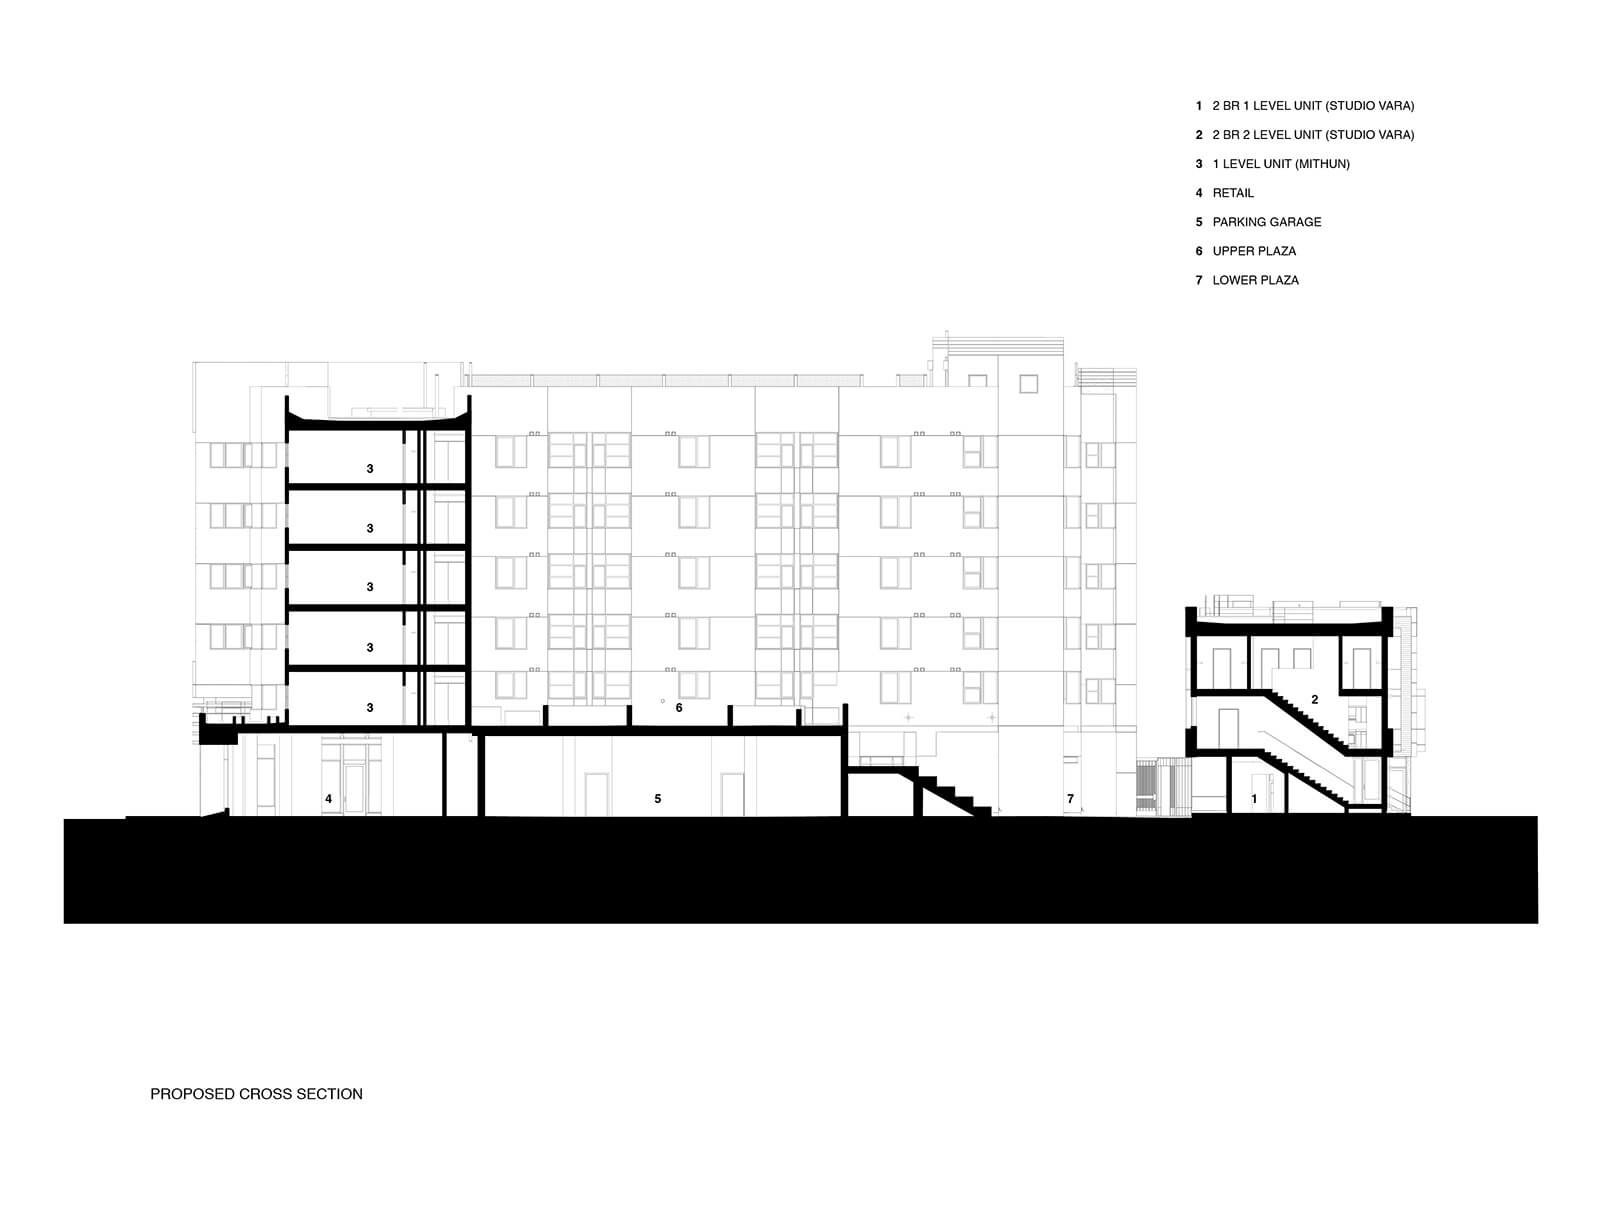 studio vara multifamily 626 mission bay blvd. drawing section